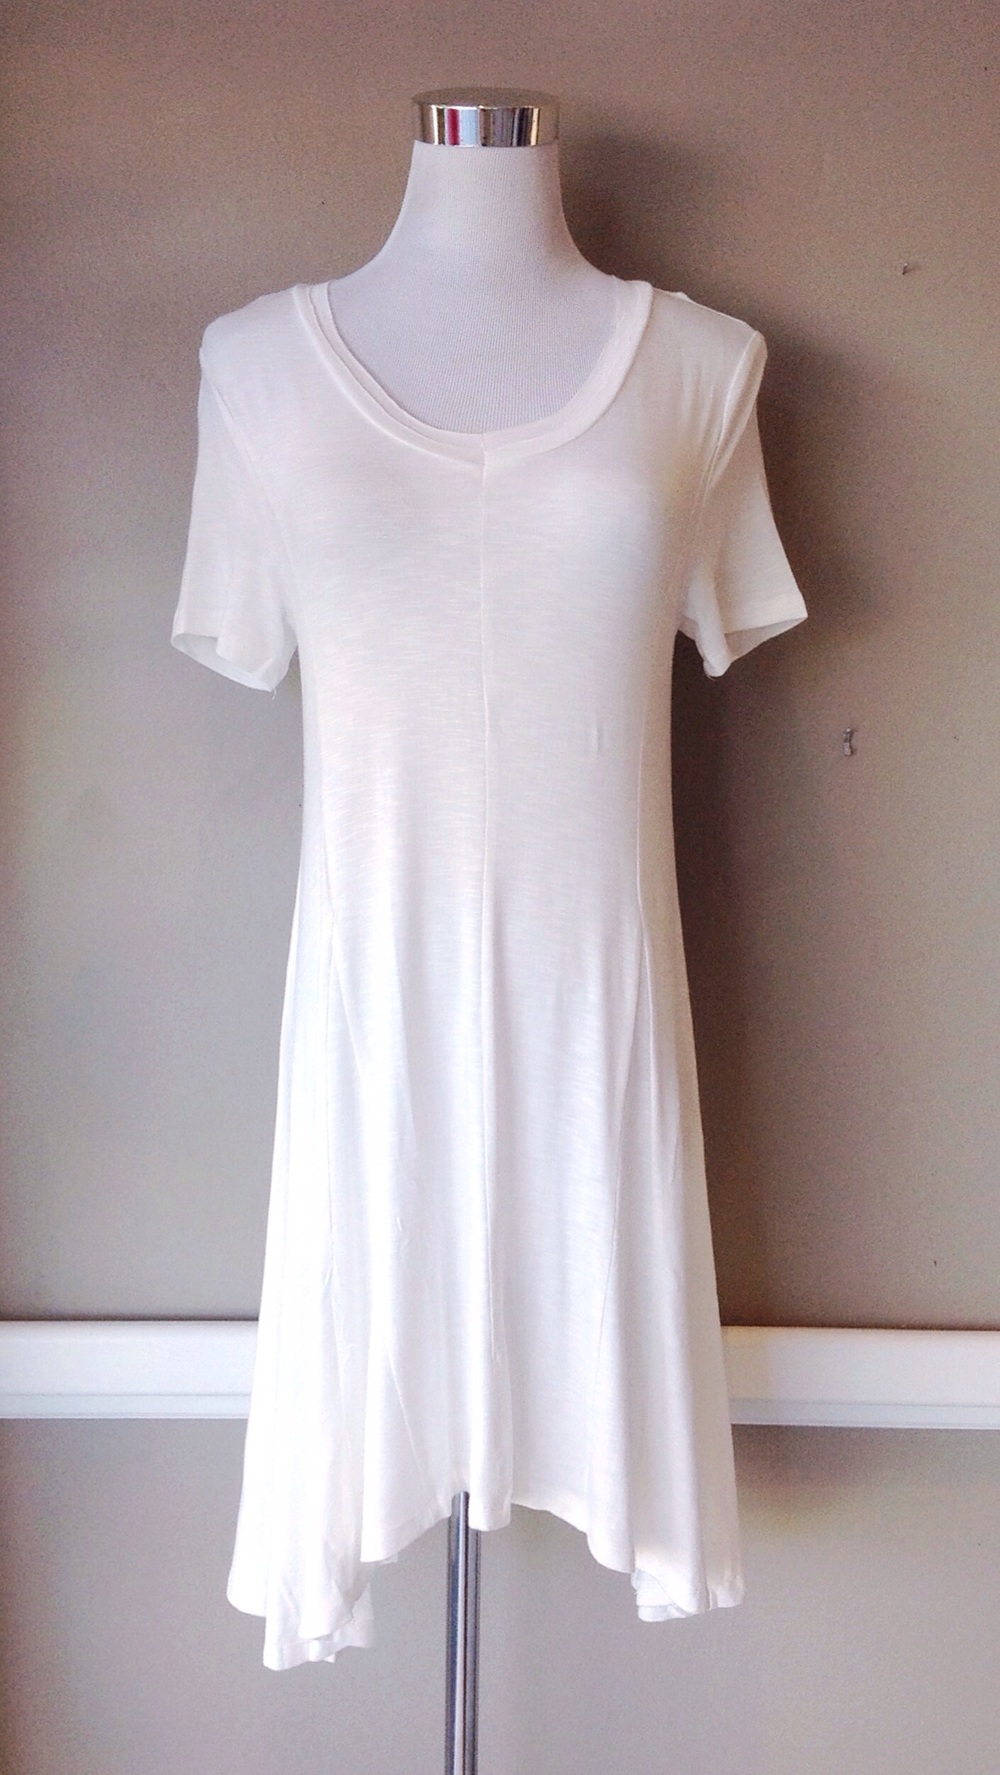 Textured rayon/spandex A-line T-shirt dress in cream, $34